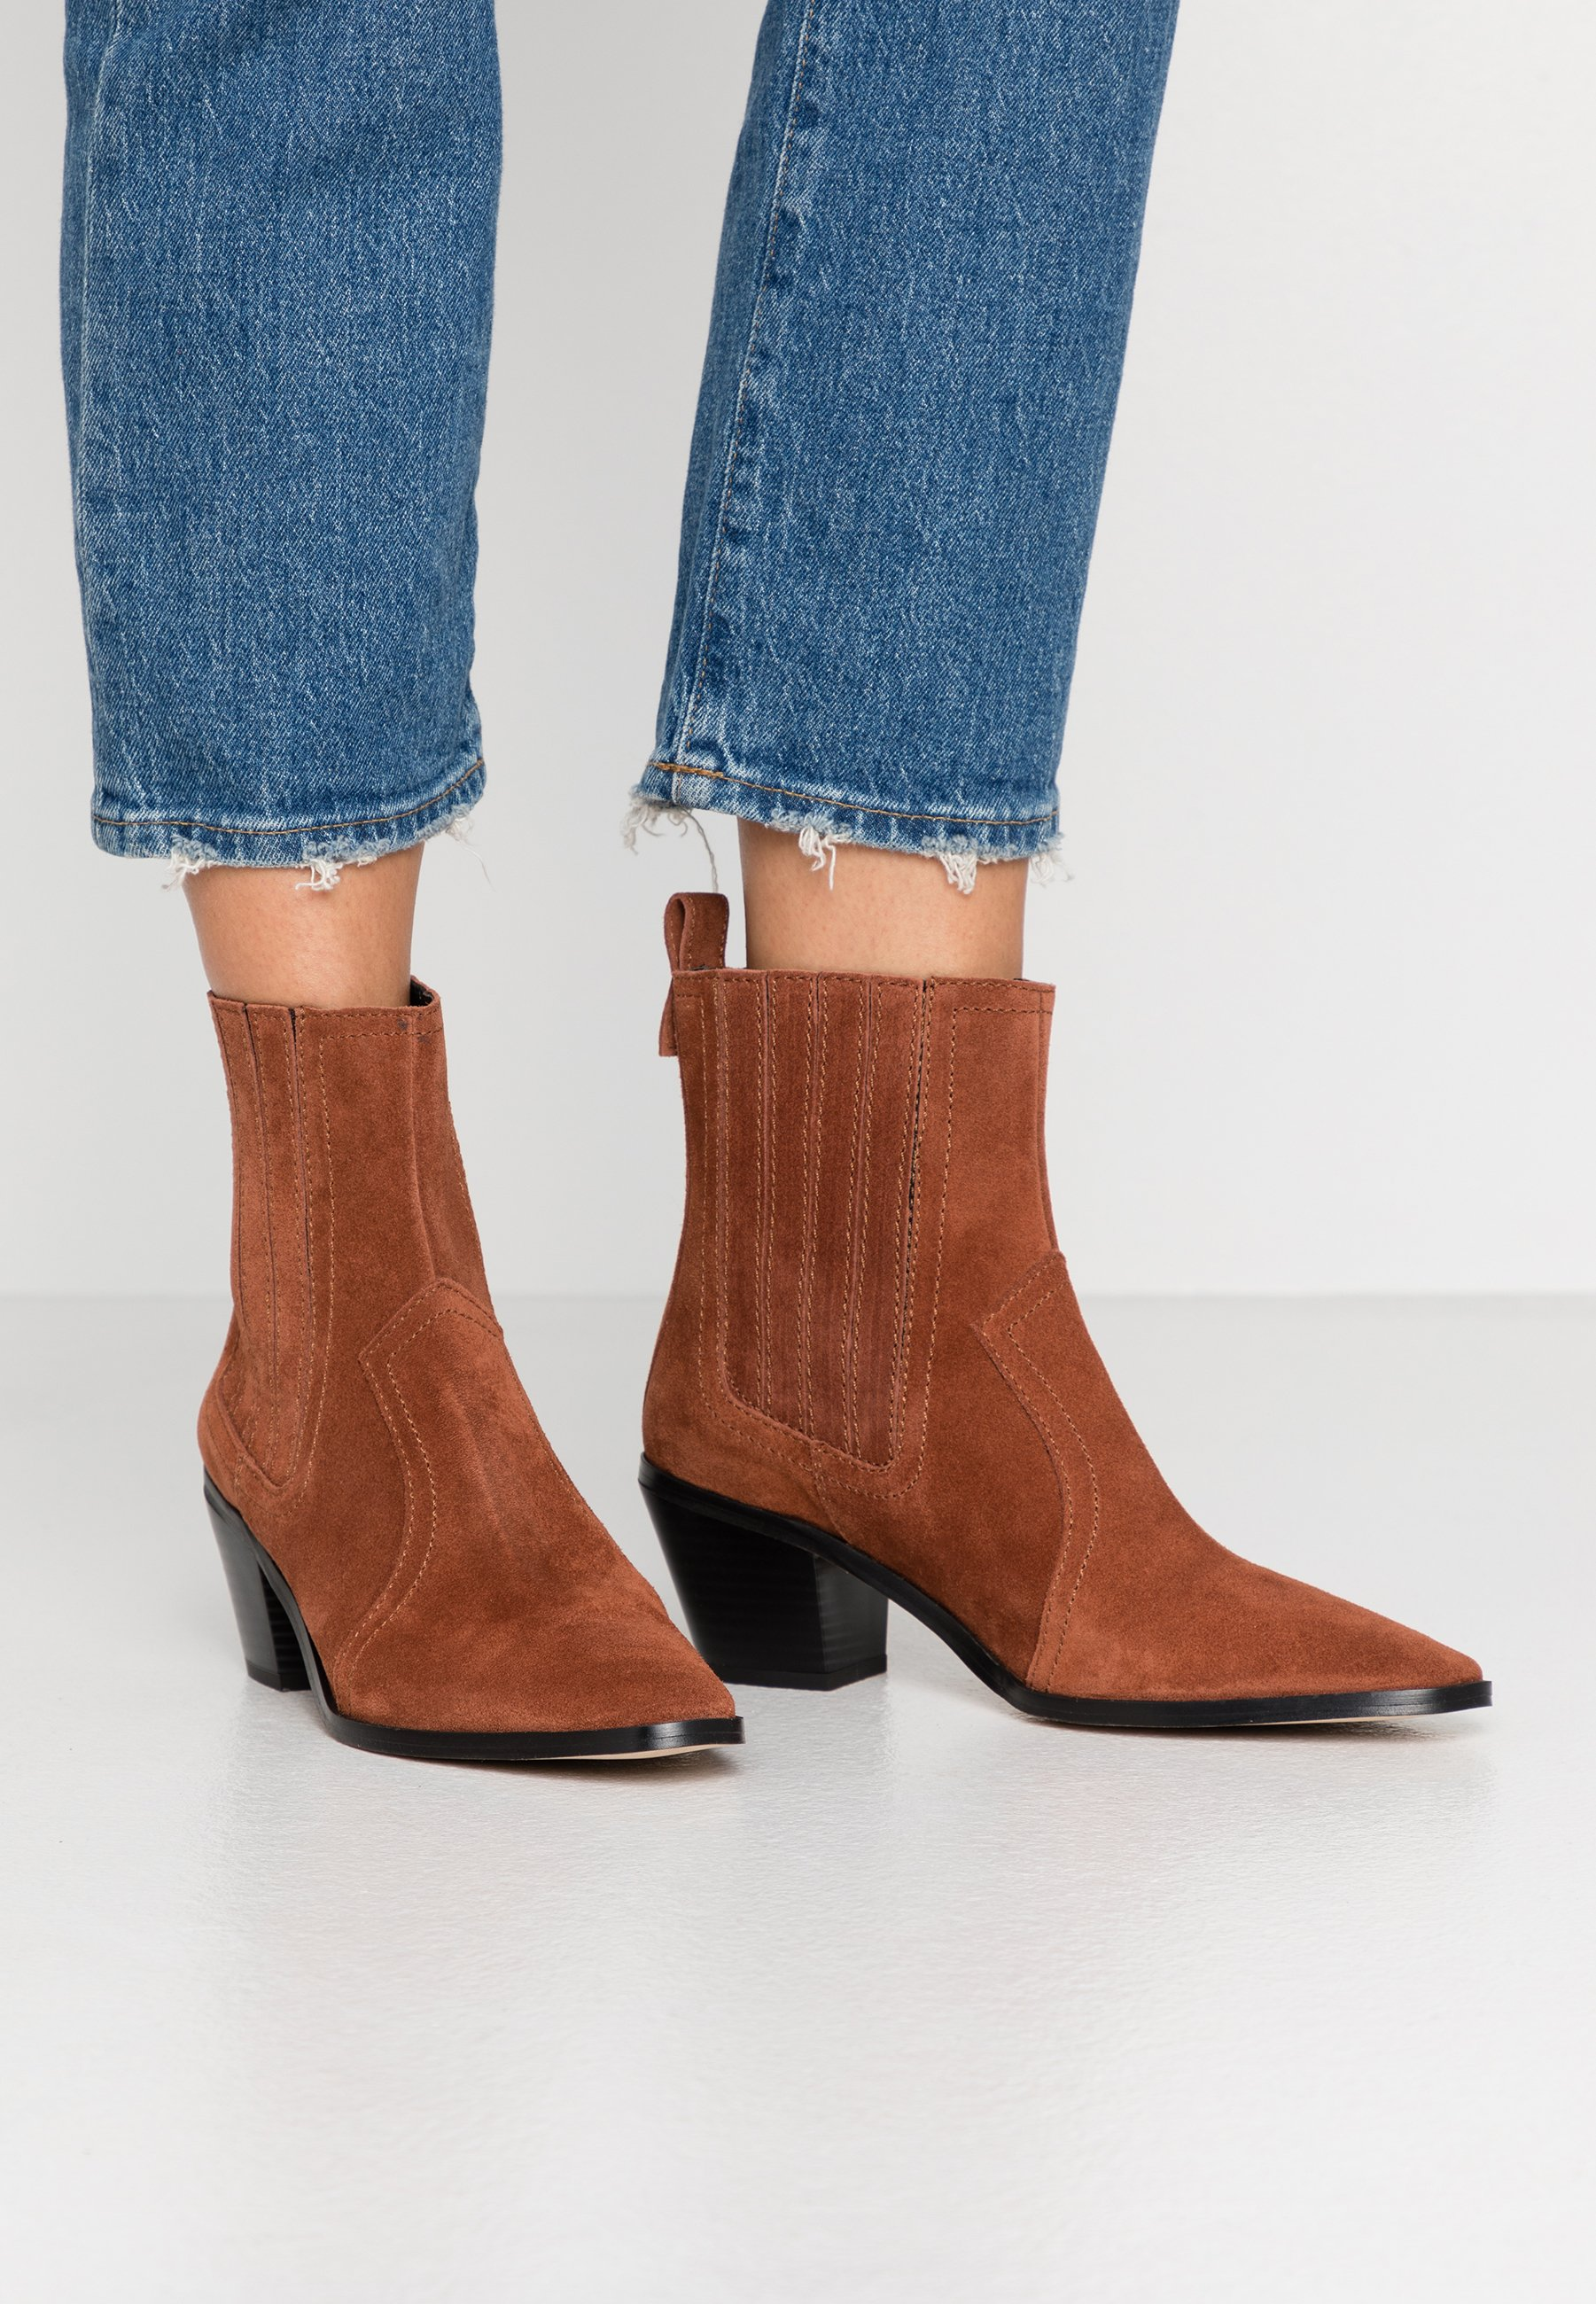 Cheapest Cheapest L'INTERVALLE BLANCHE - Cowboy/biker ankle boot - brown   women's shoes 2020 vrPE6